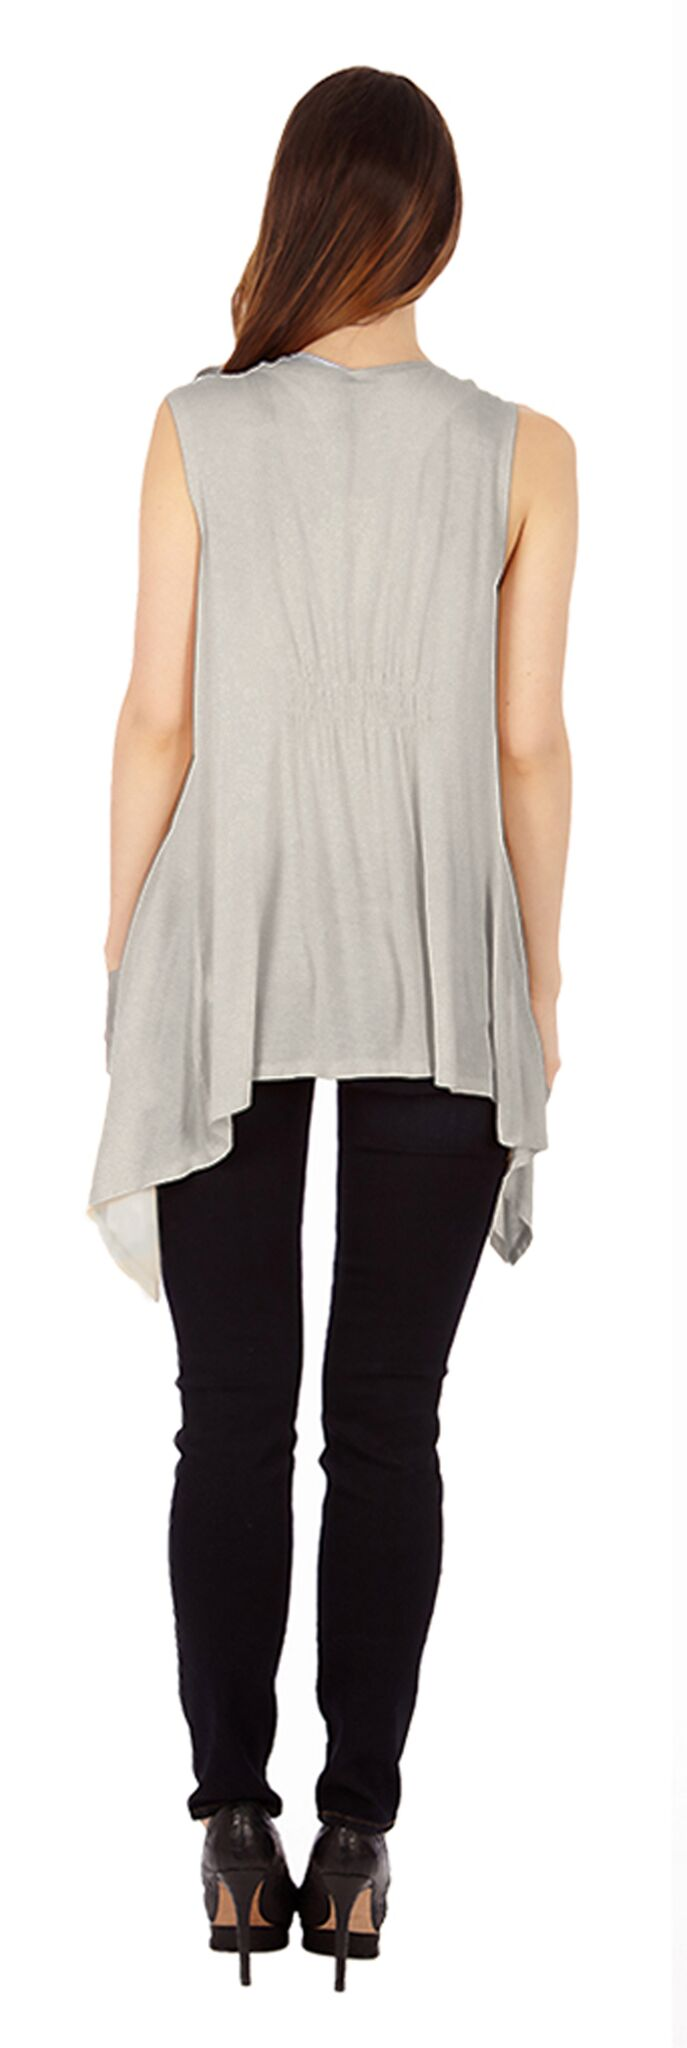 Light Heather Gray Sleveless Cardigan - Home Goods Galore